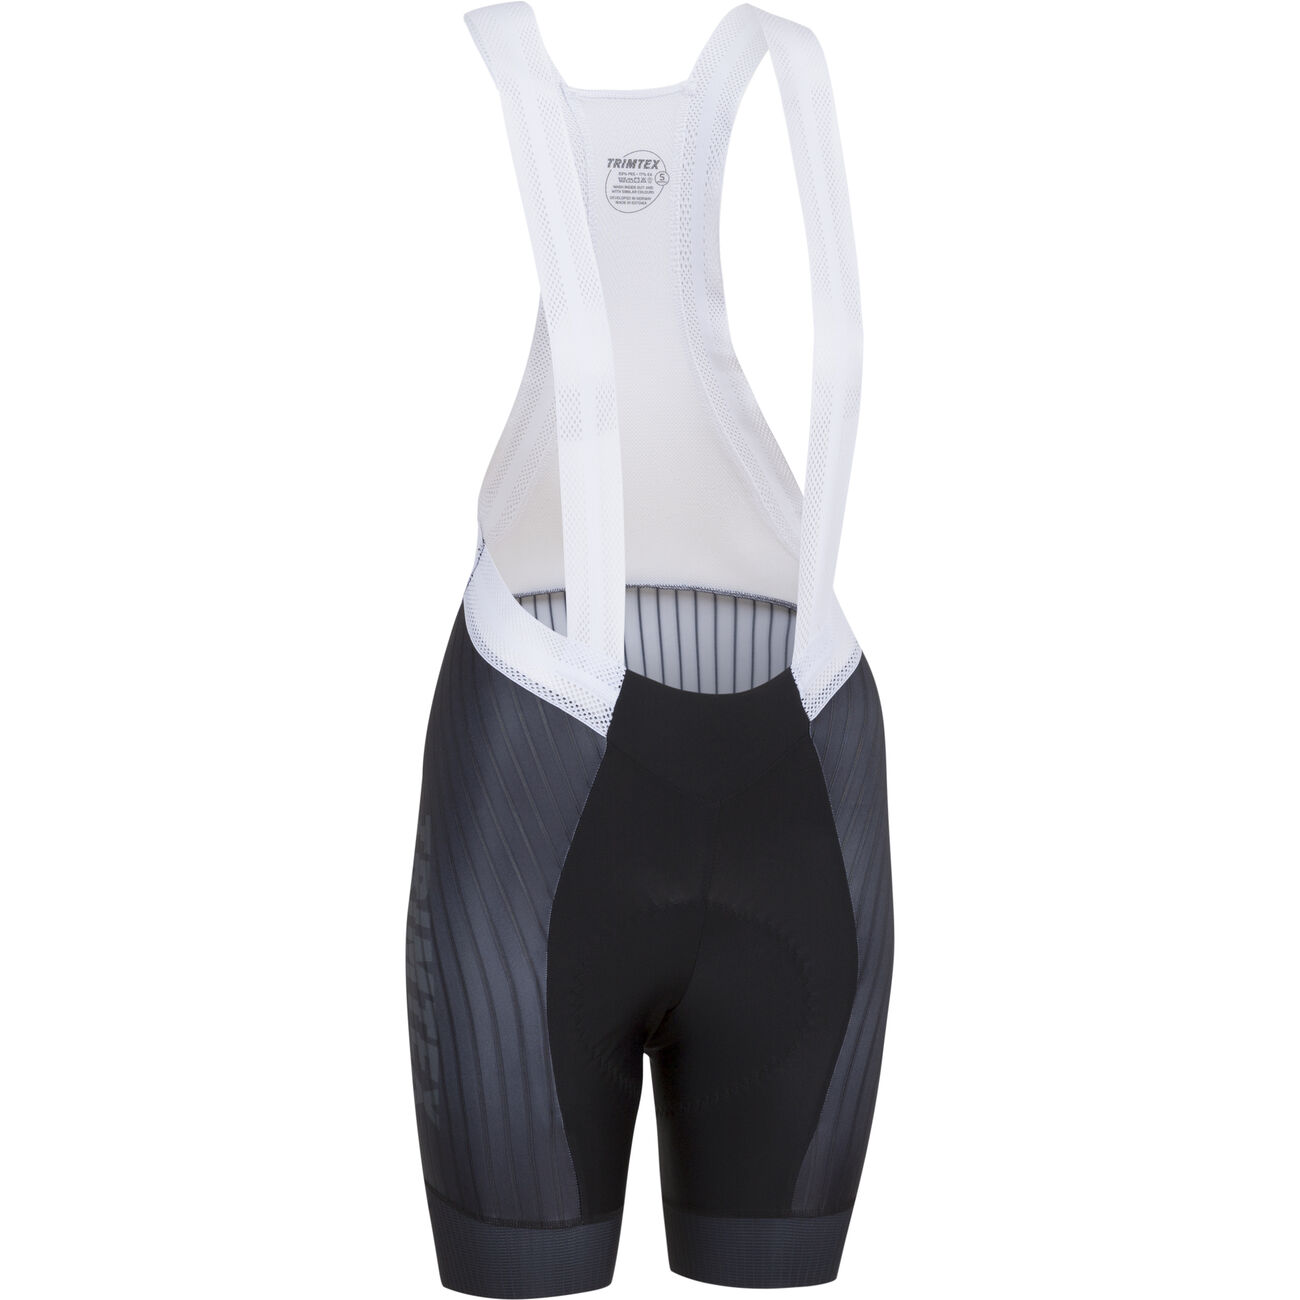 Aero cycling Bib shorts women's